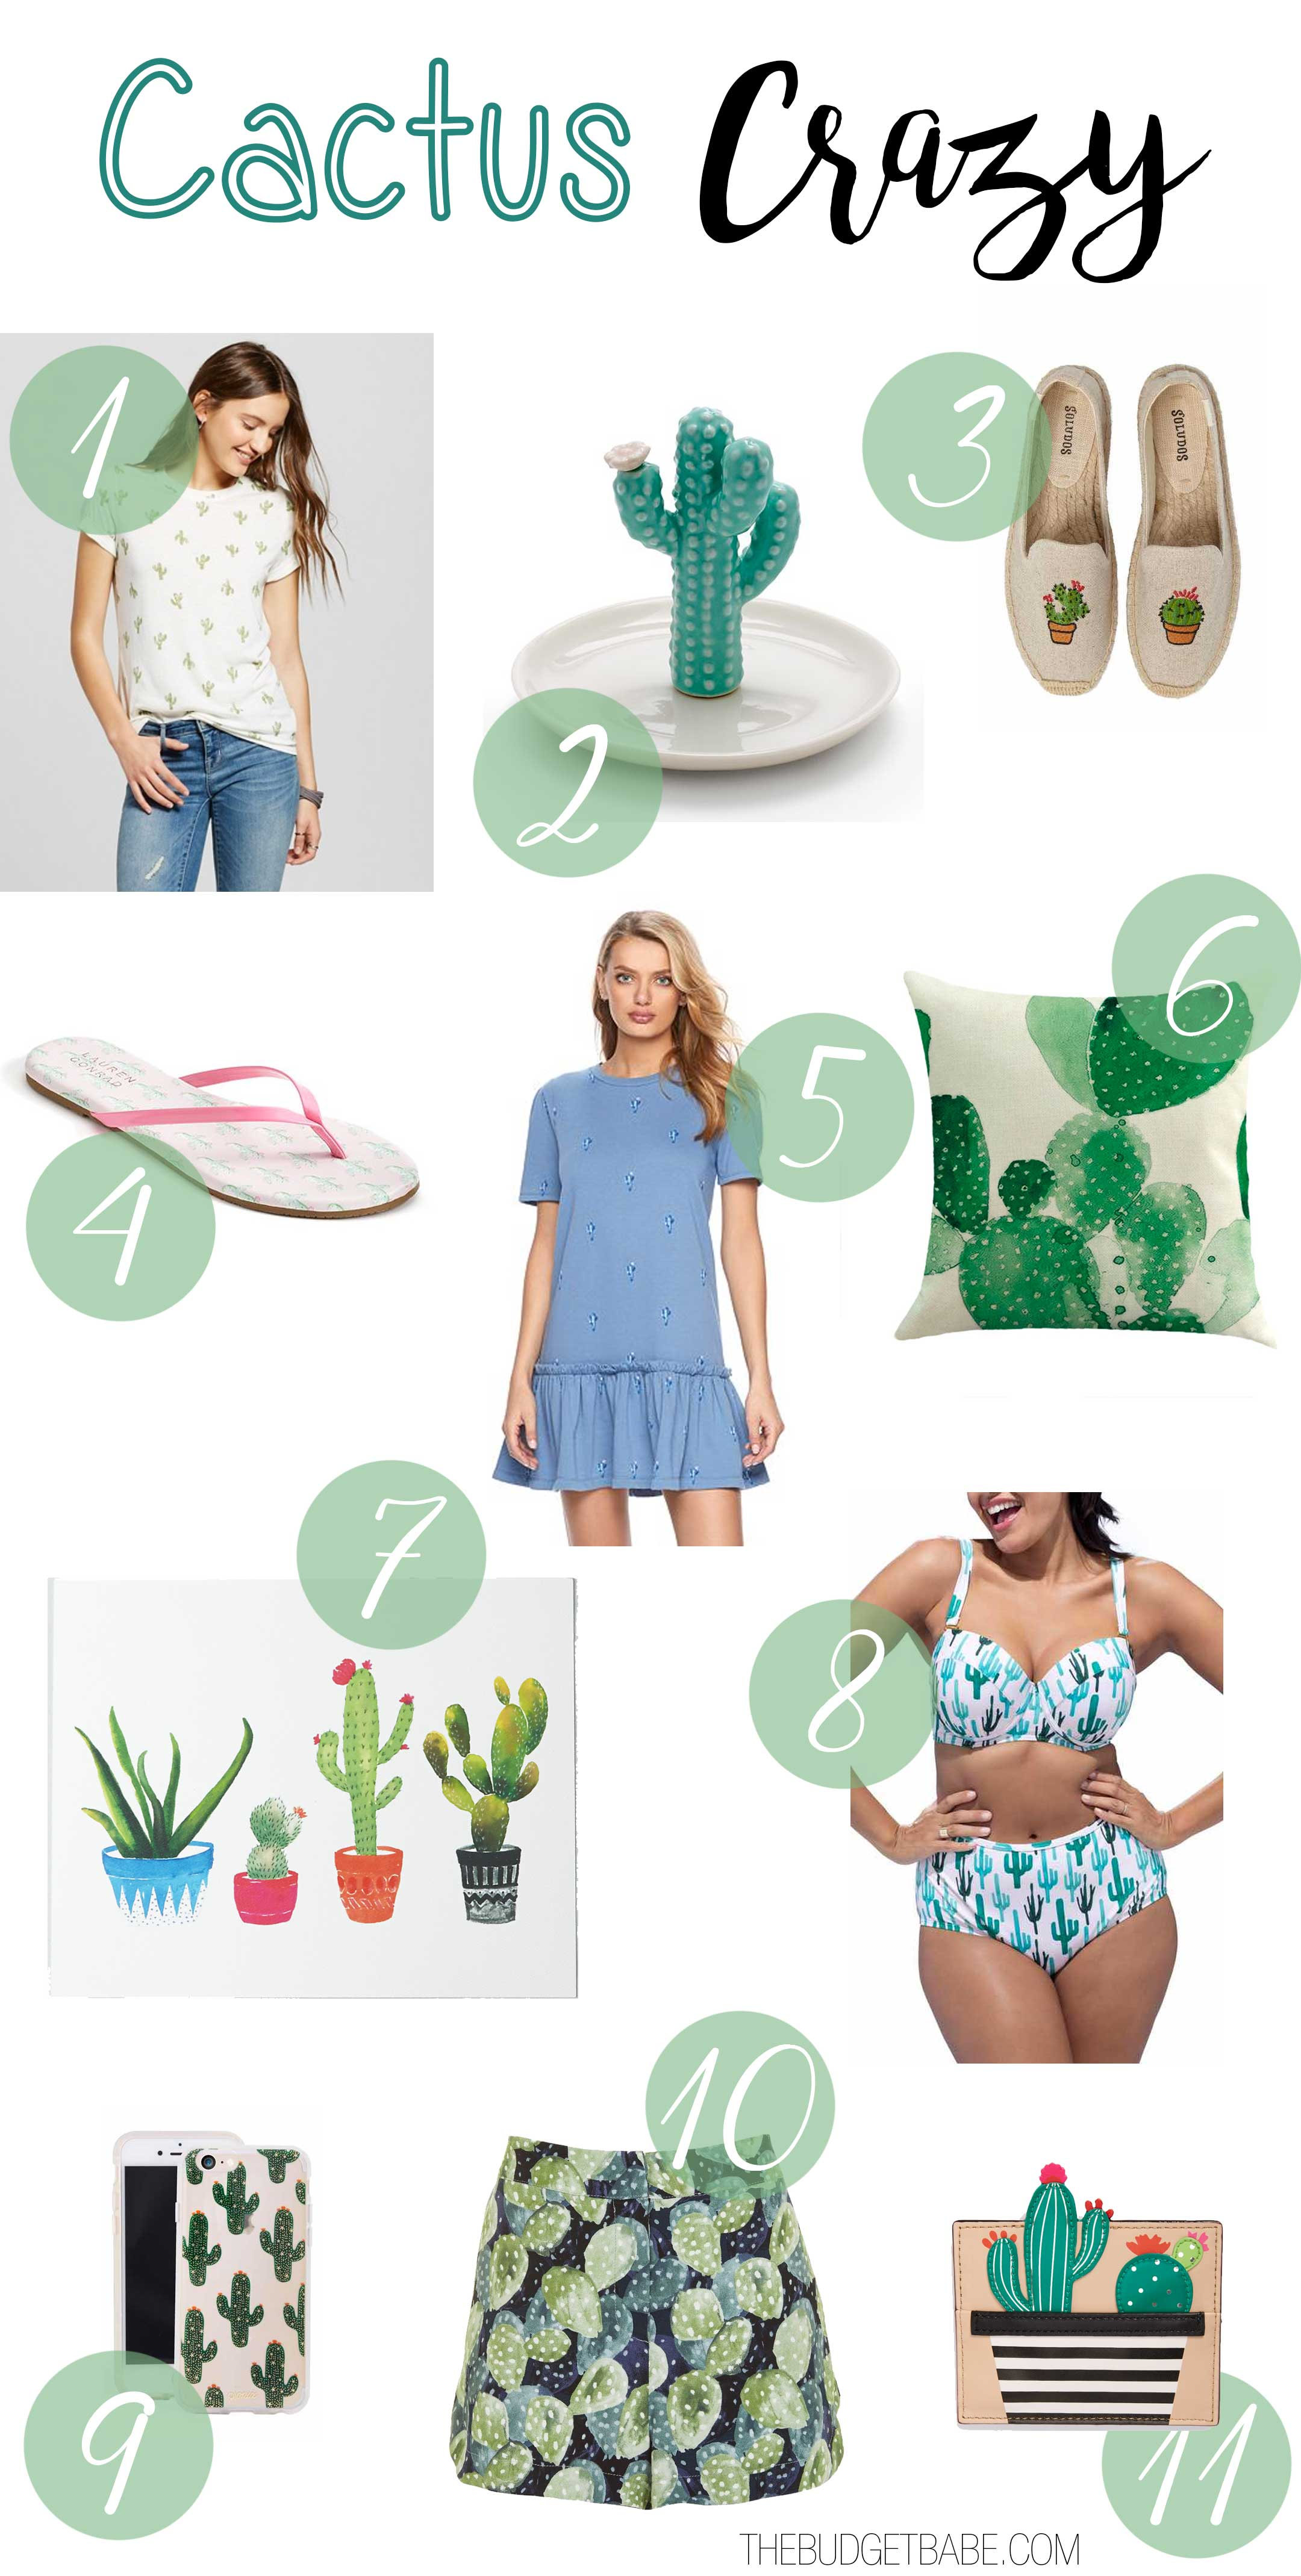 We're crazy for cactus themed fashions and decor.